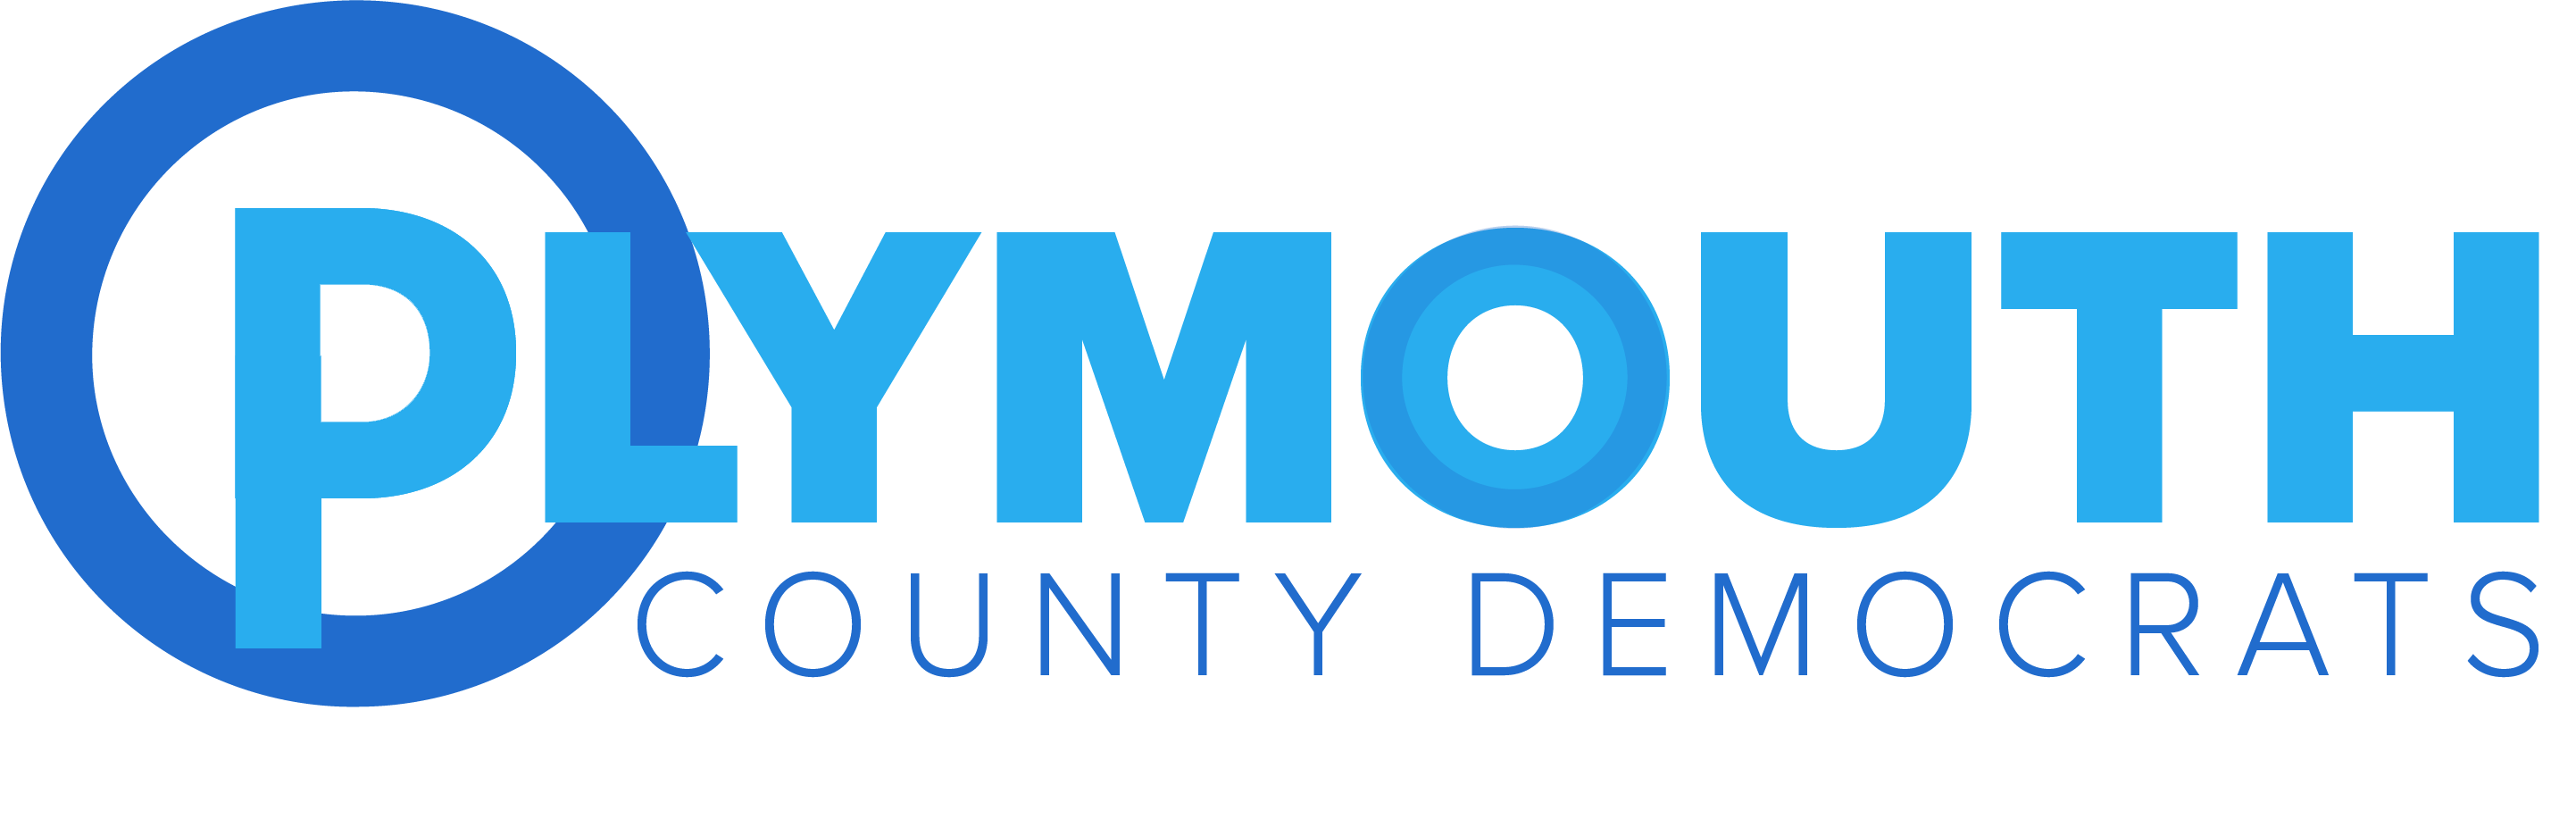 Plymouth County Democratic Party (IA)